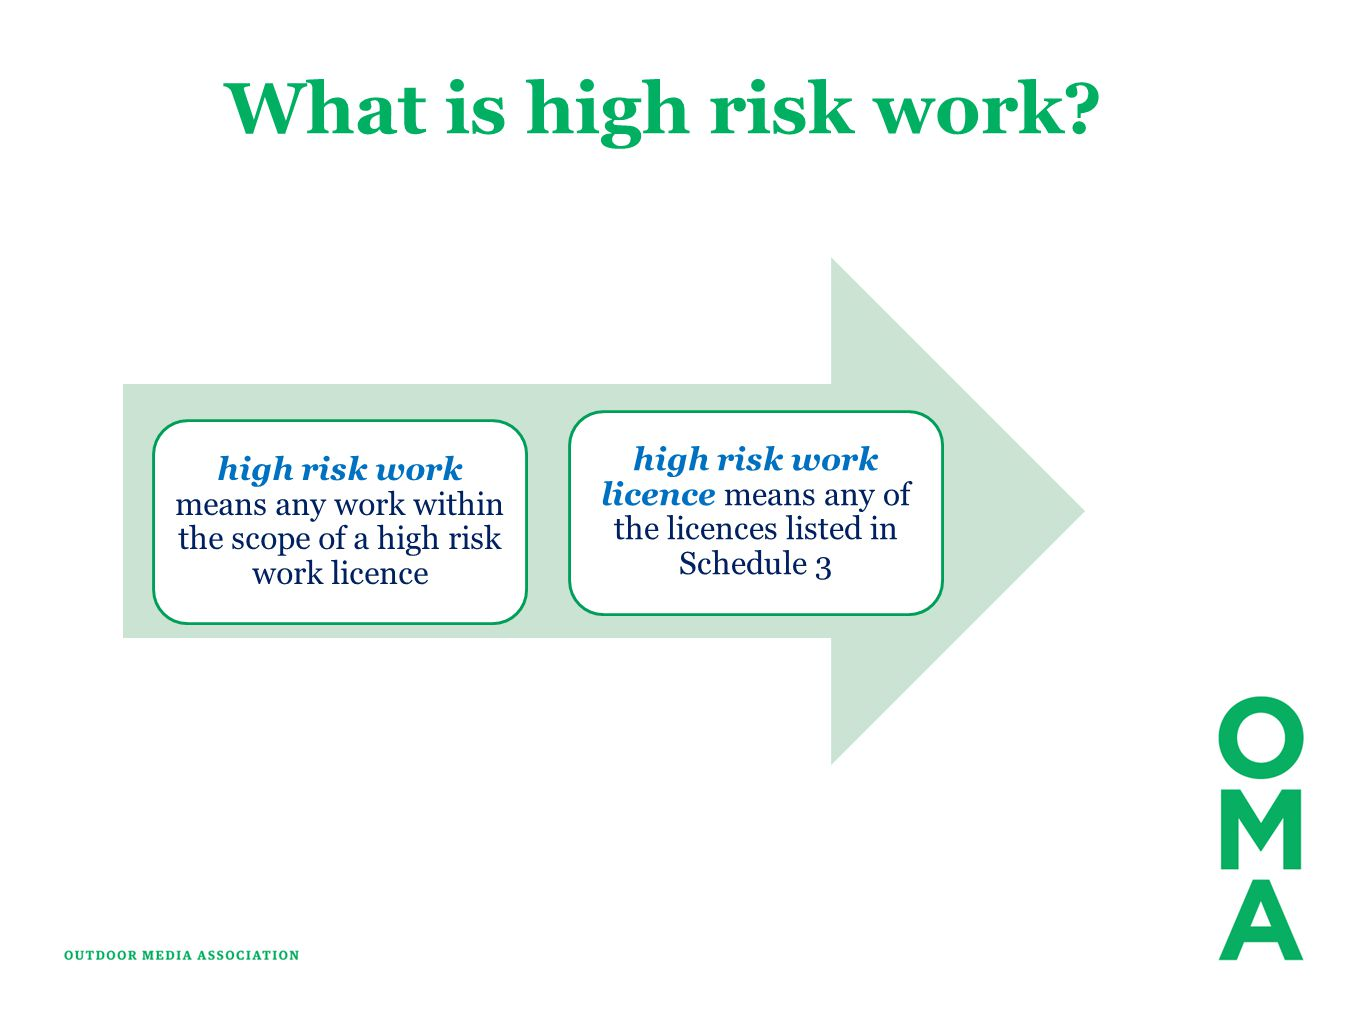 high risk work licence means any of the licences listed in Schedule 3